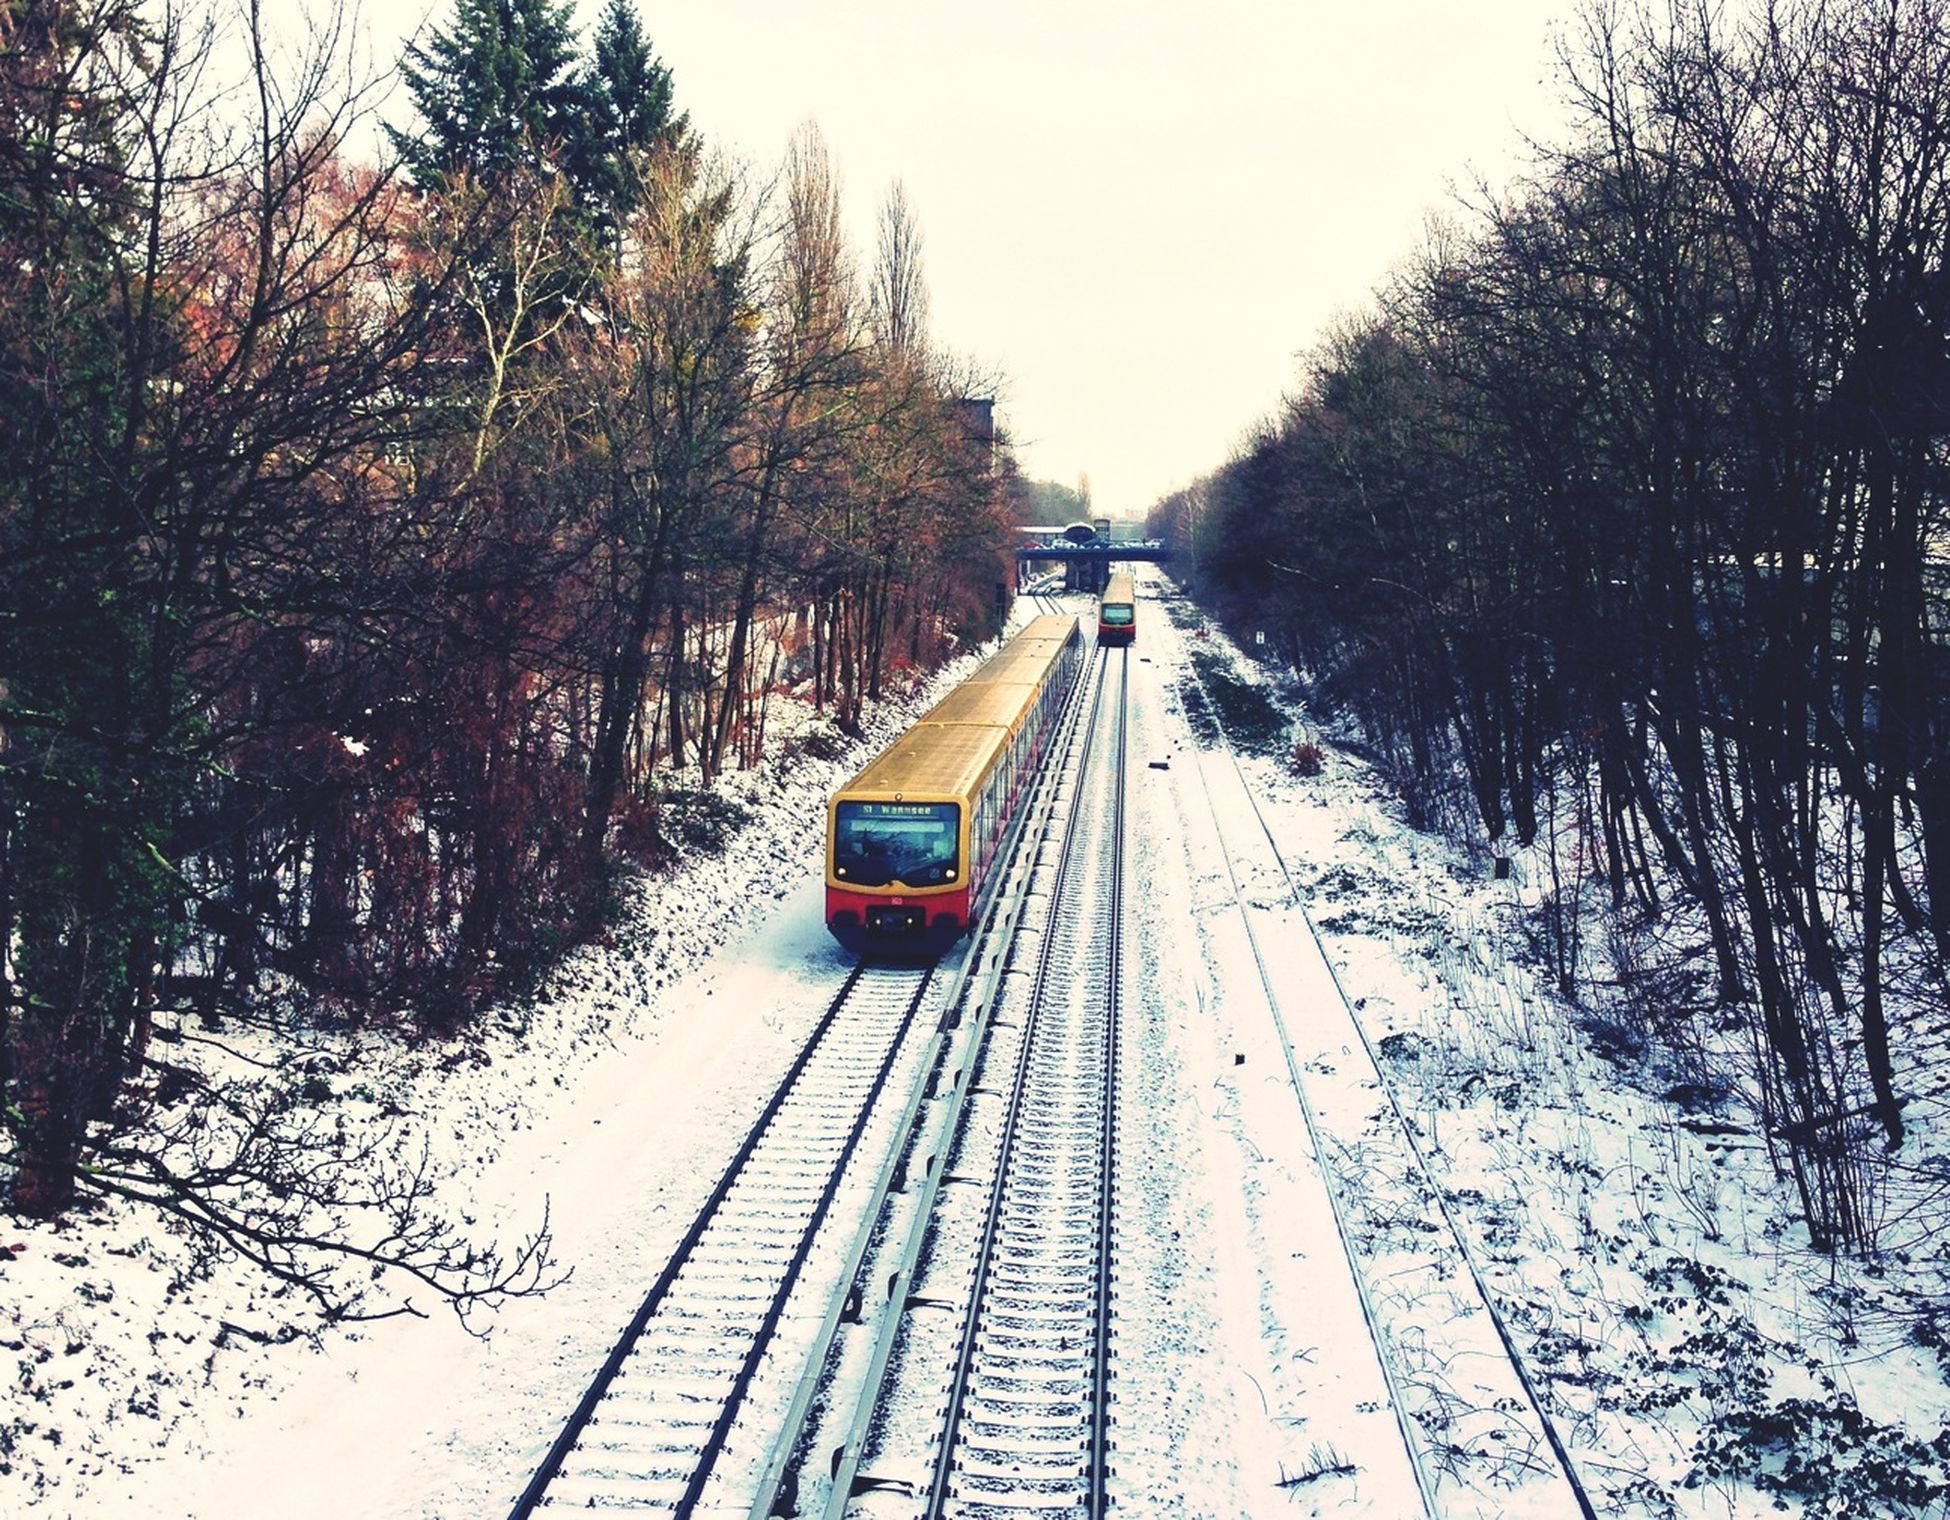 transportation, tree, the way forward, diminishing perspective, snow, mode of transport, vanishing point, winter, clear sky, cold temperature, forest, season, travel, nature, bare tree, road, tranquility, tranquil scene, weather, railroad track